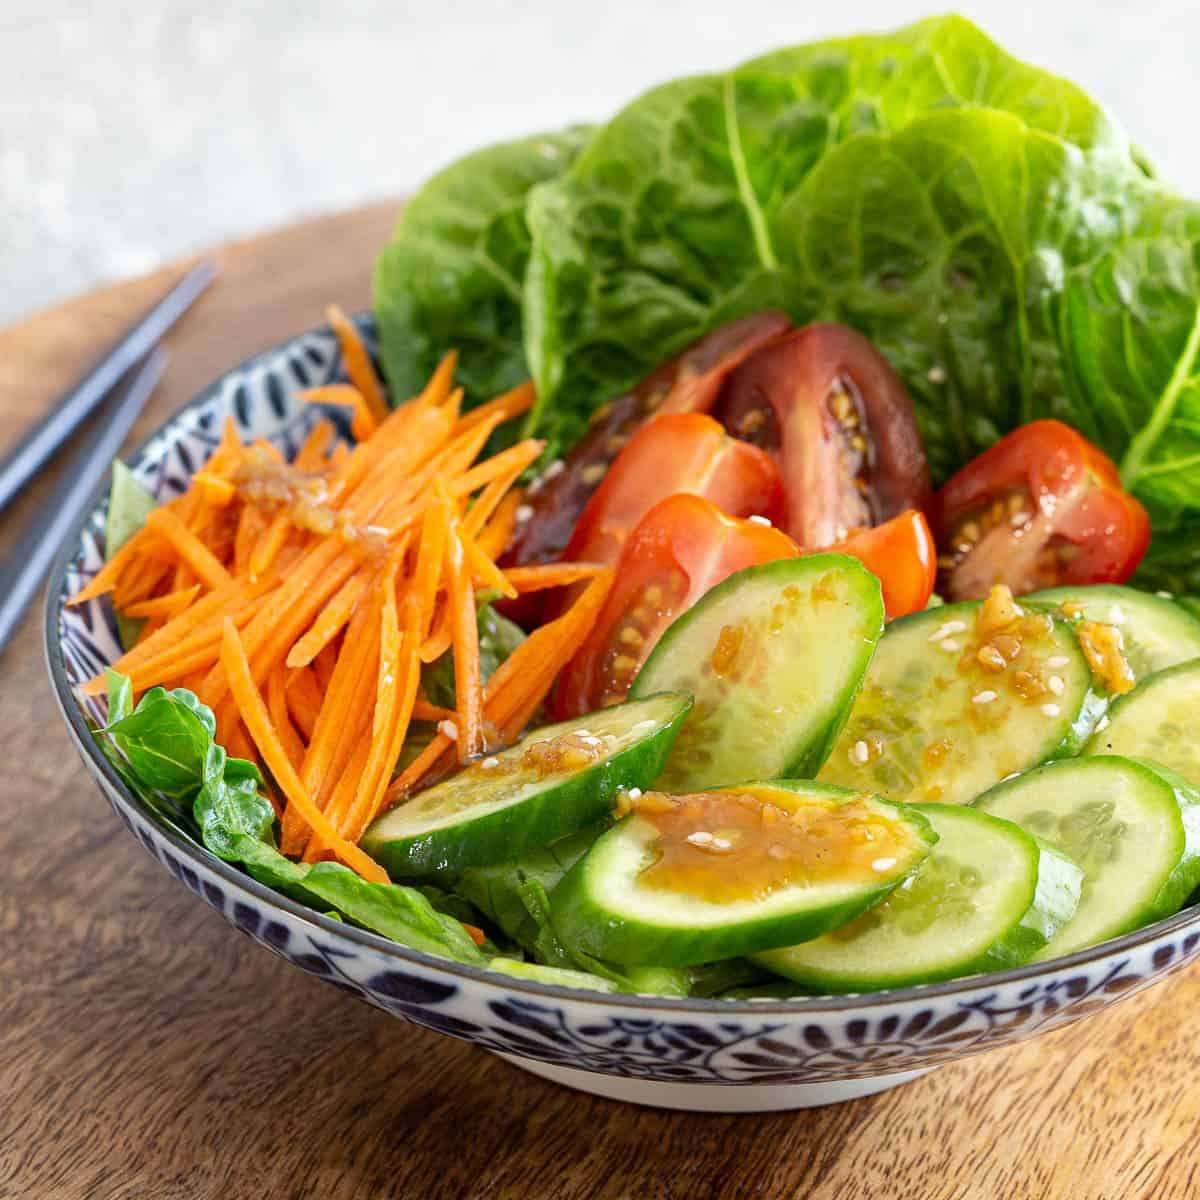 Prepared salad of cucumber, tomato, carrot and lettuce topped with wafu dressing.